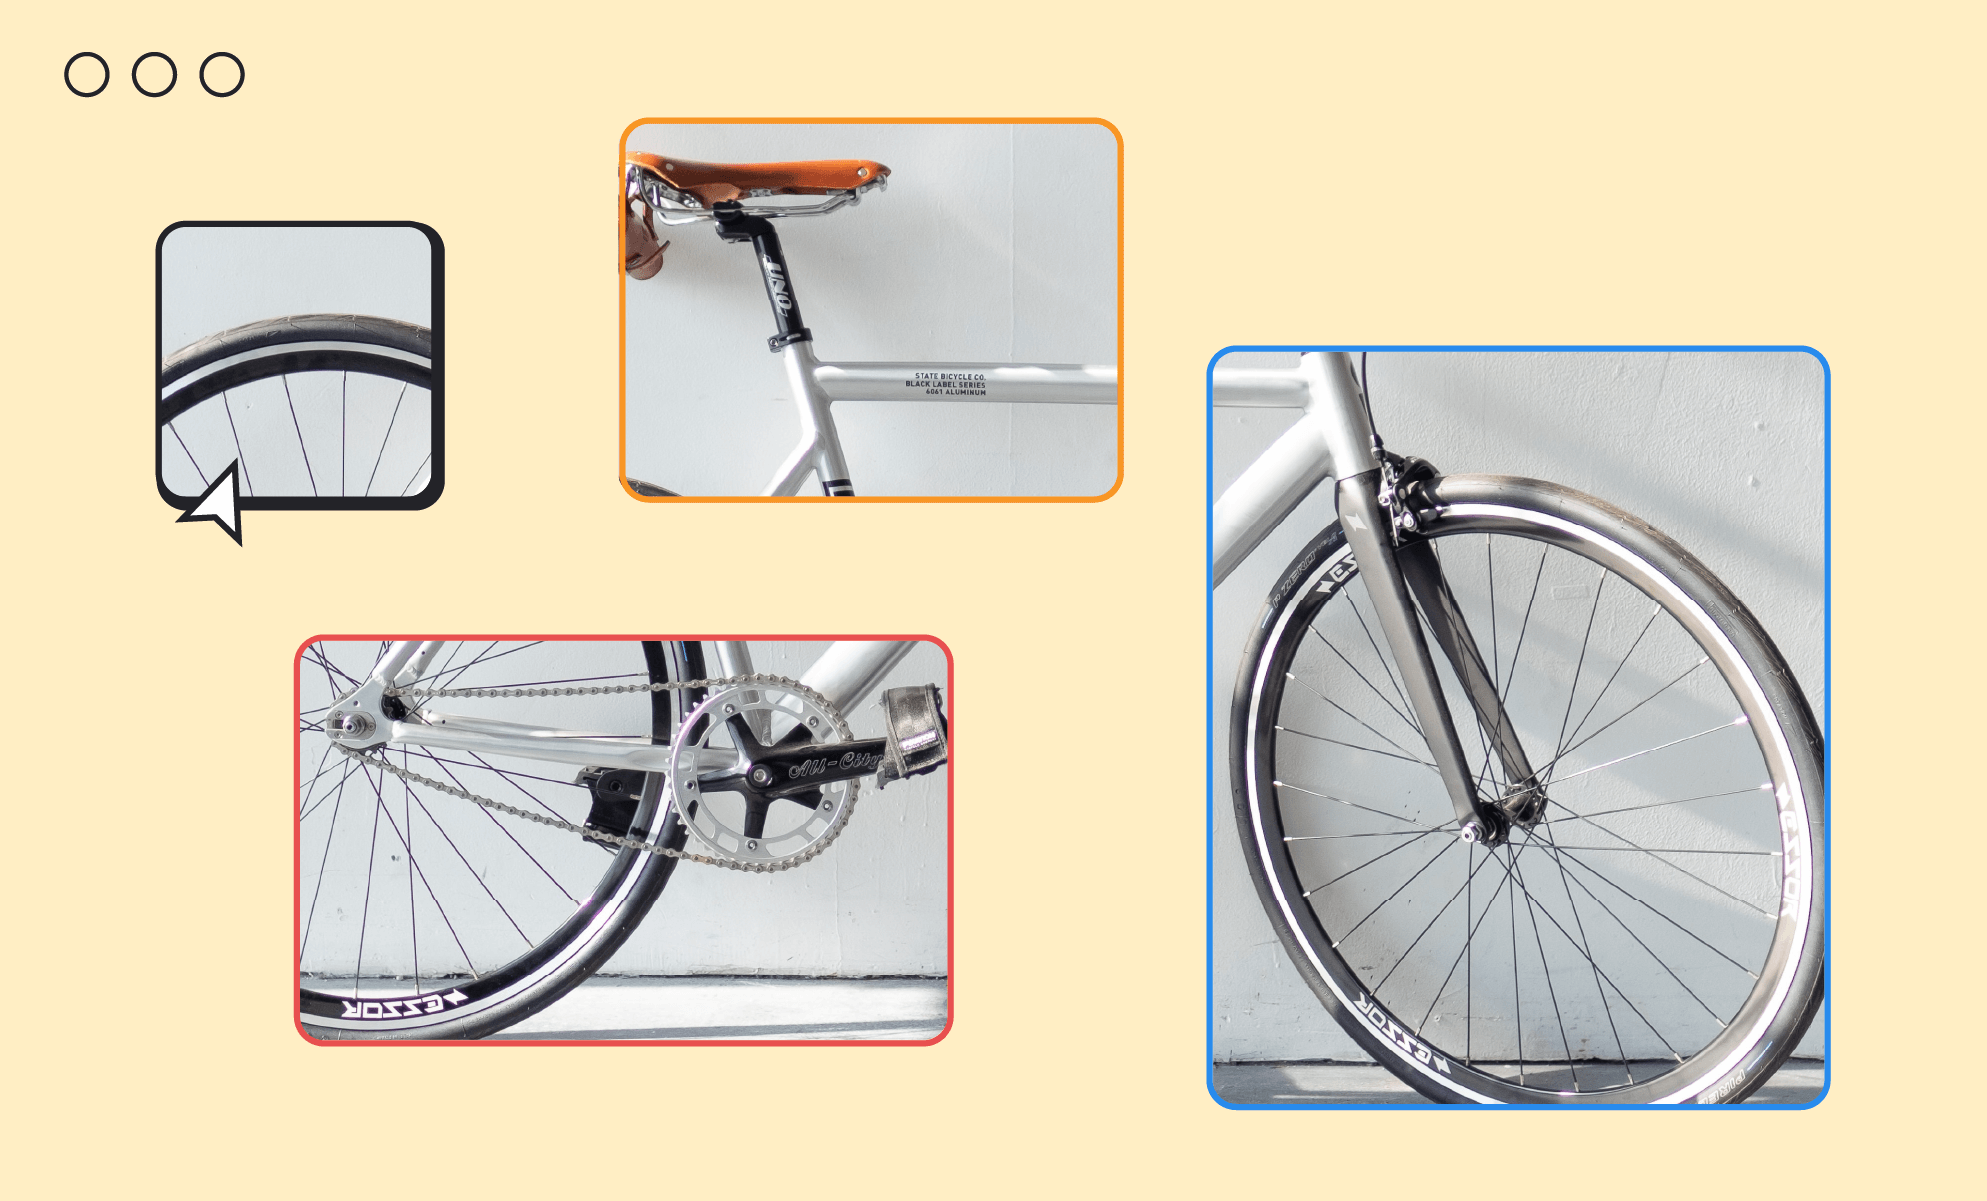 Parts of a bicycle, with close-ups of the gears, wheels, frame, and tires. BrainStorm, Inc. (Oct. 2021)